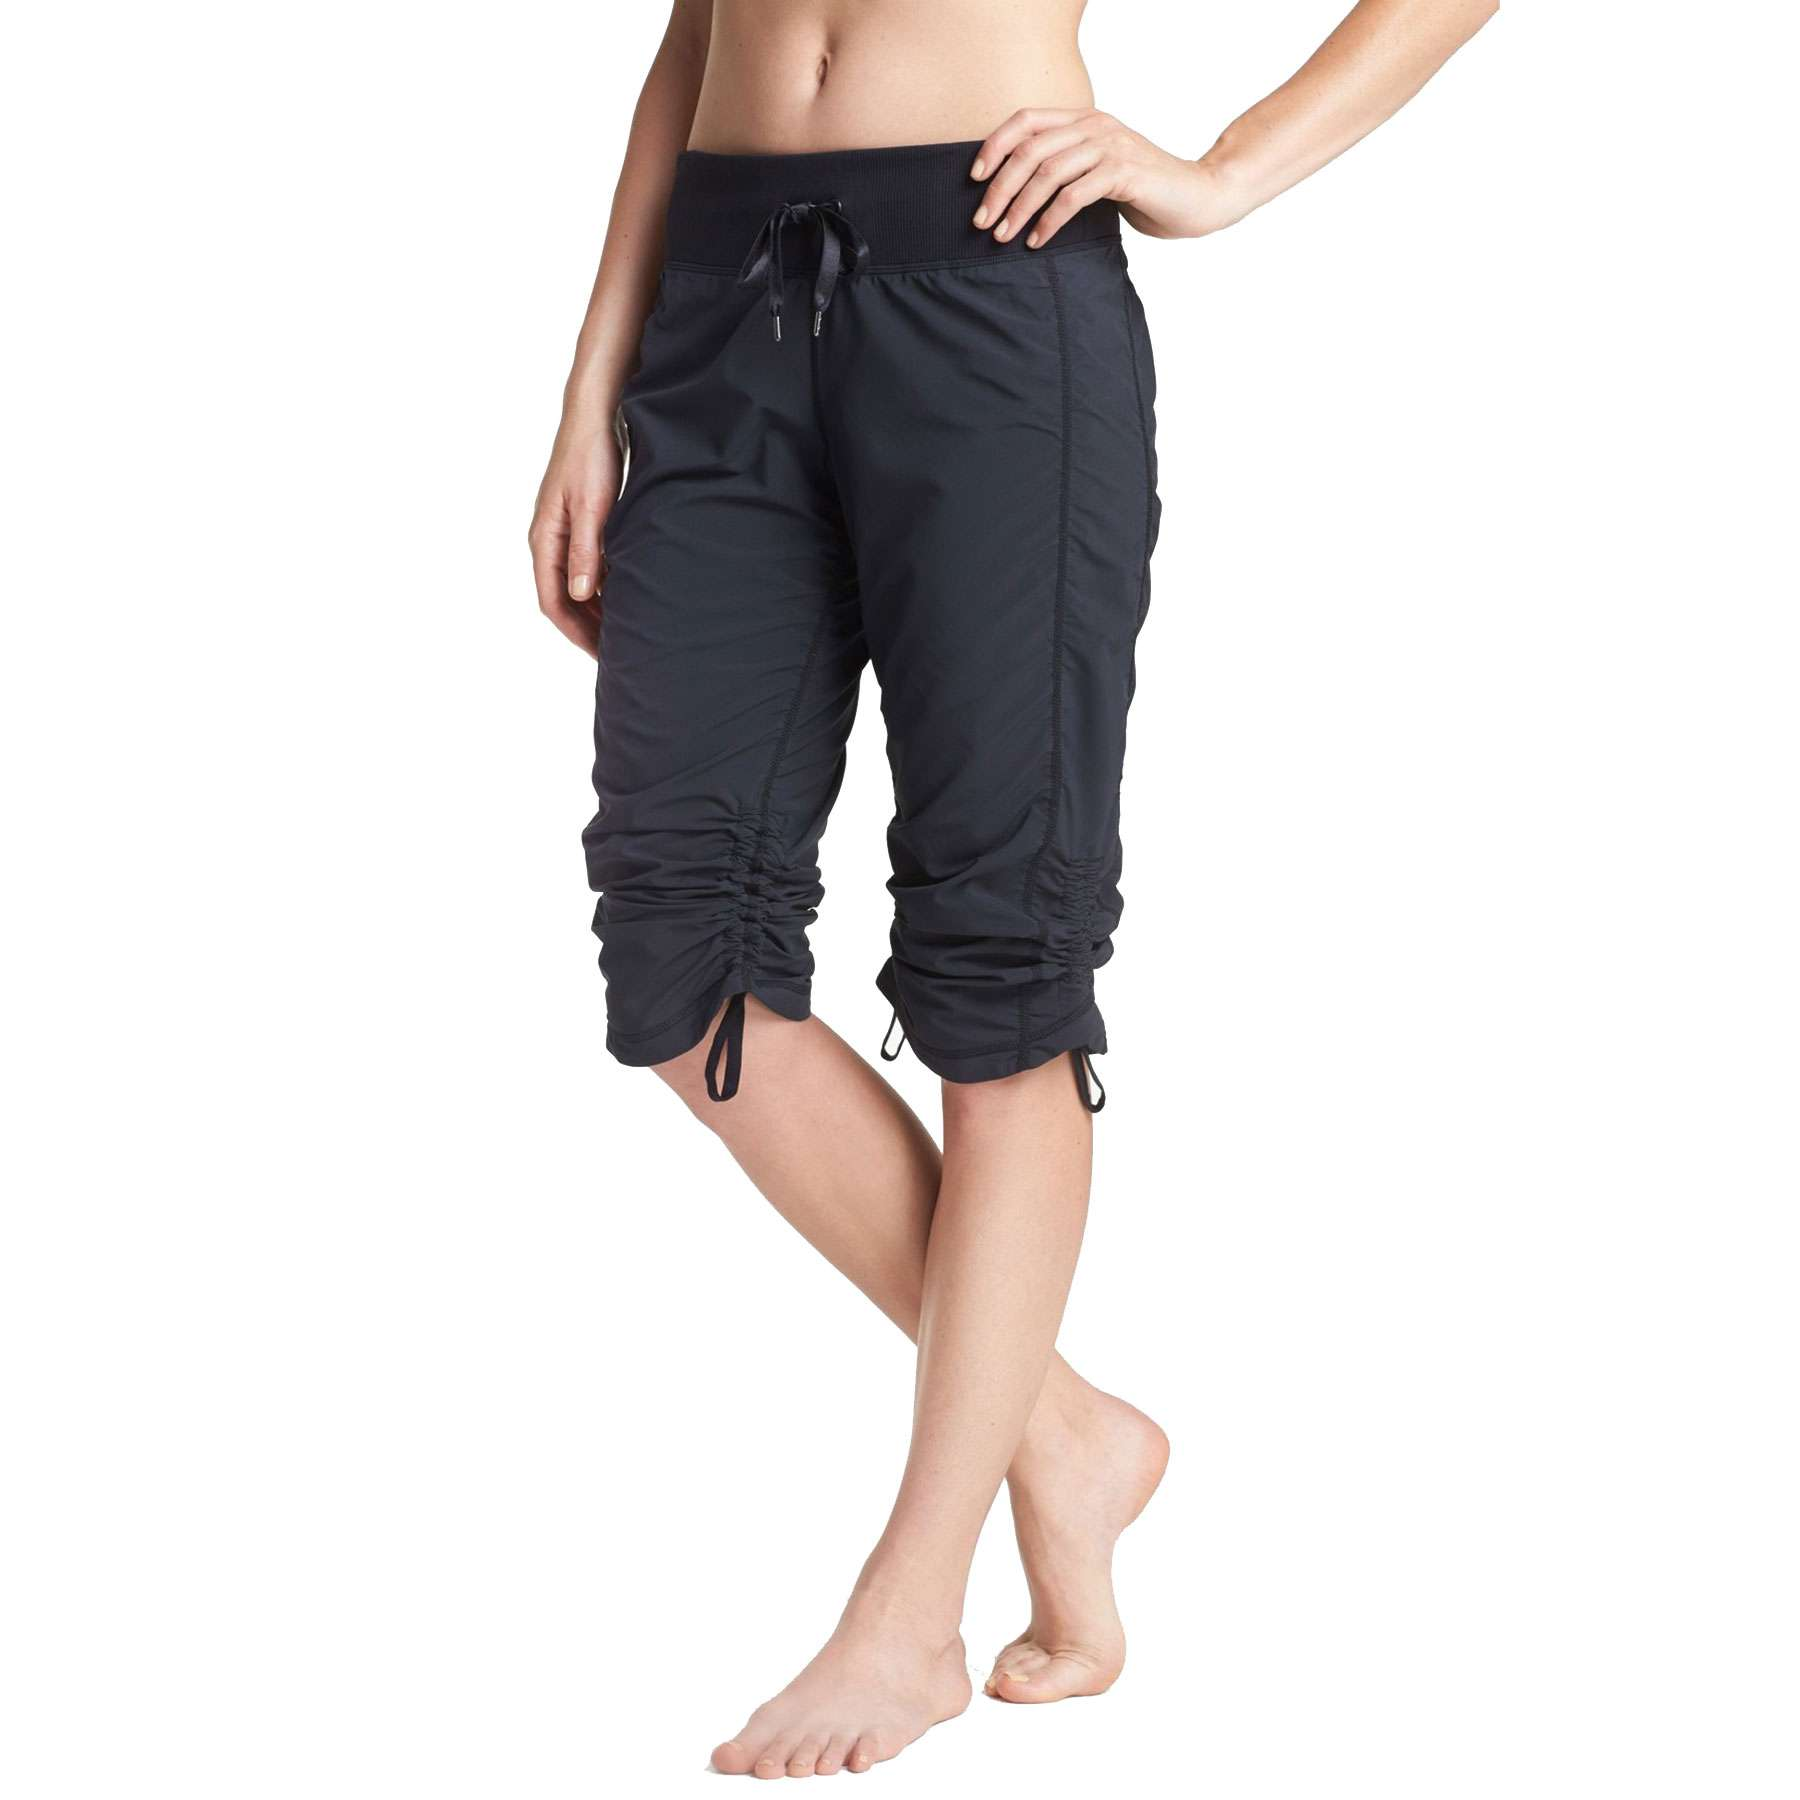 These Zella Move-It convertible capris are cute and comfy.